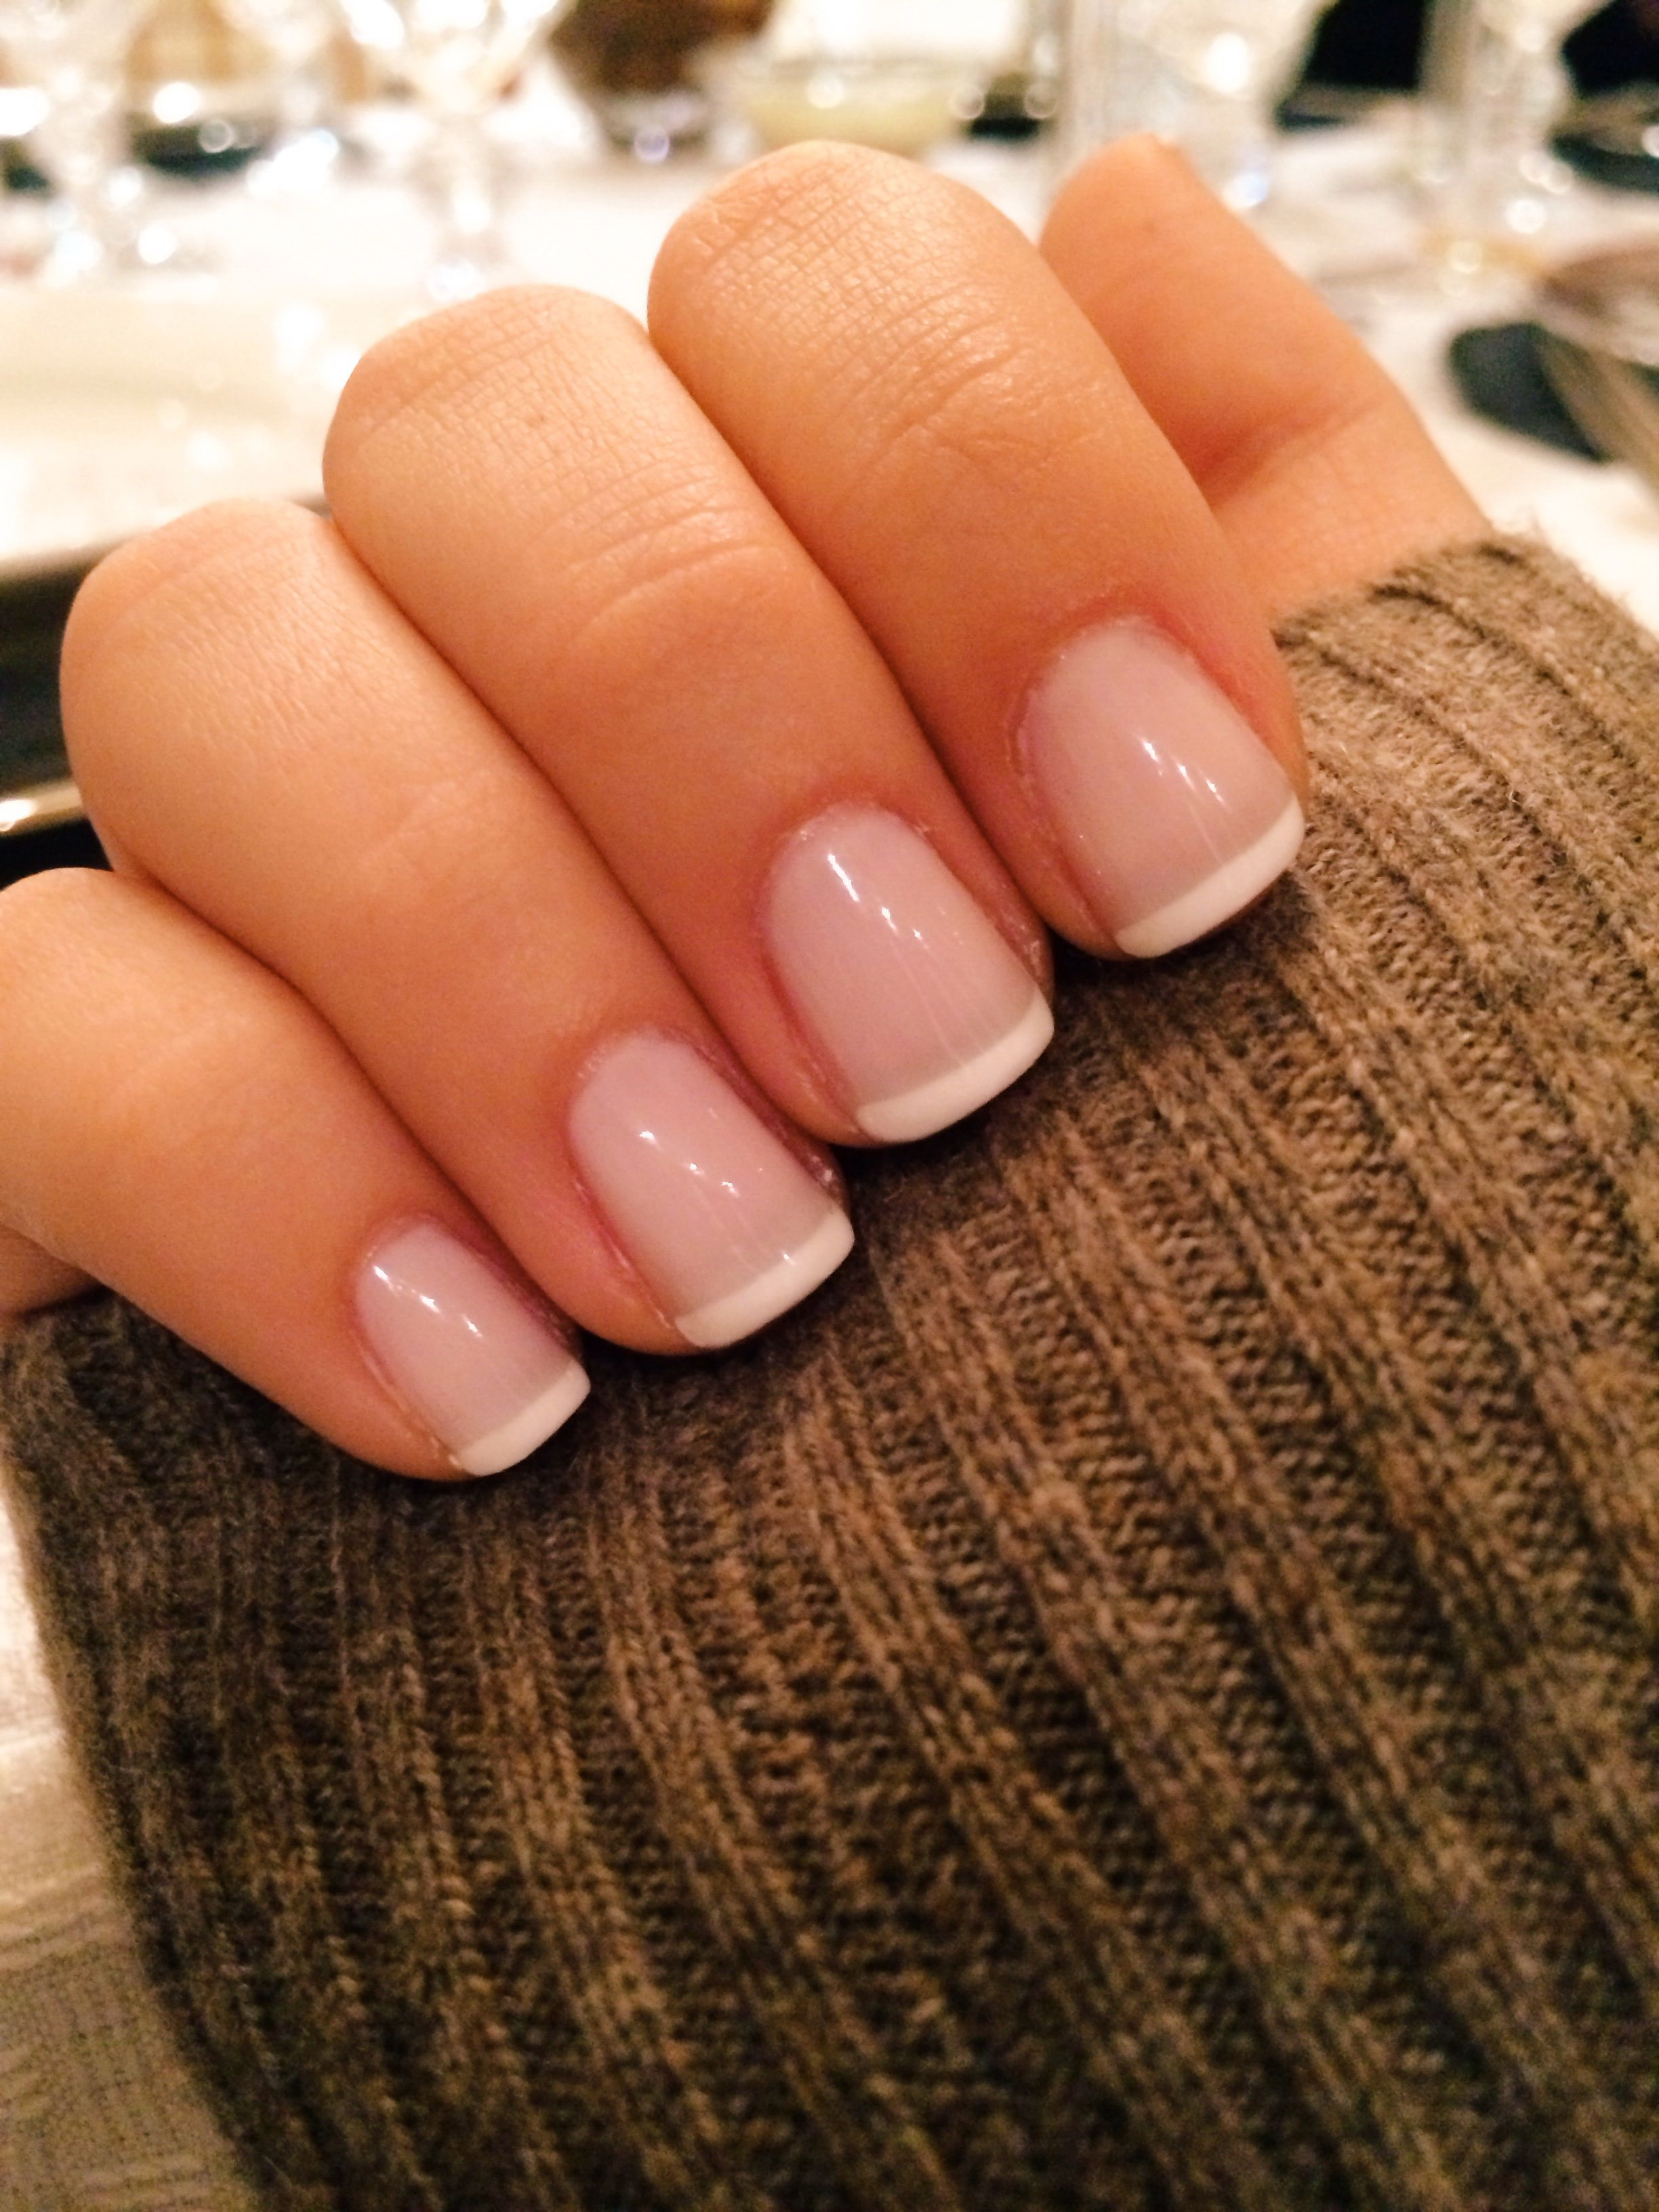 Classy french manicure (using Waltz by Essie) I love the length ...